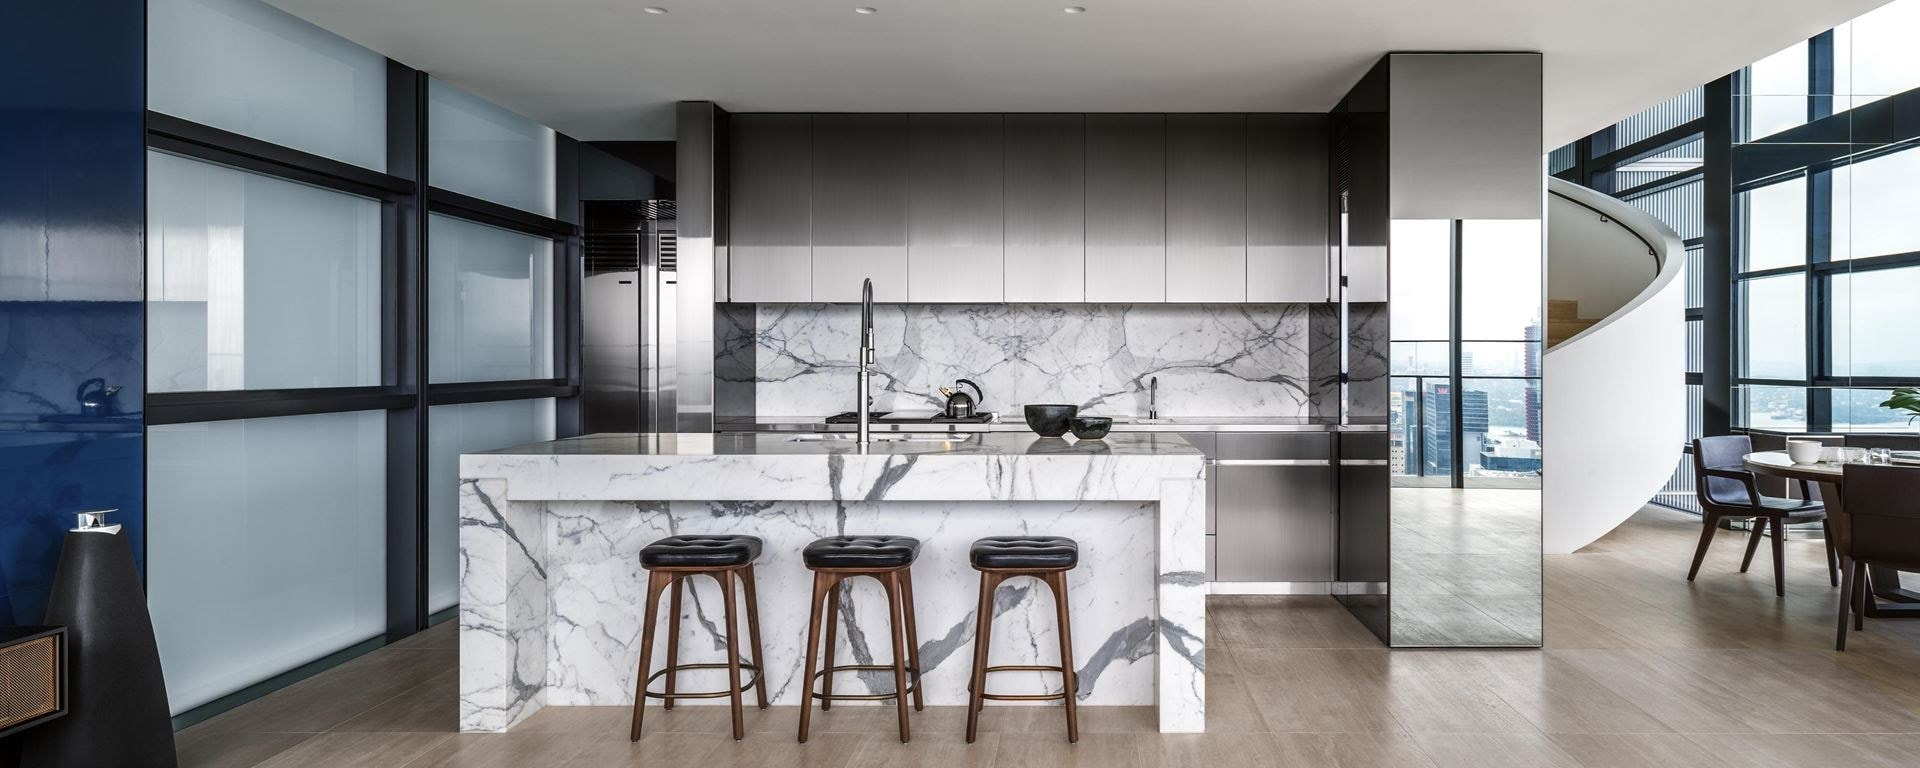 The Lumiere Penthouse kitchen design featuring Sub-Zero Refrigeration blending seamlessly into smooth minimalist cabinetry